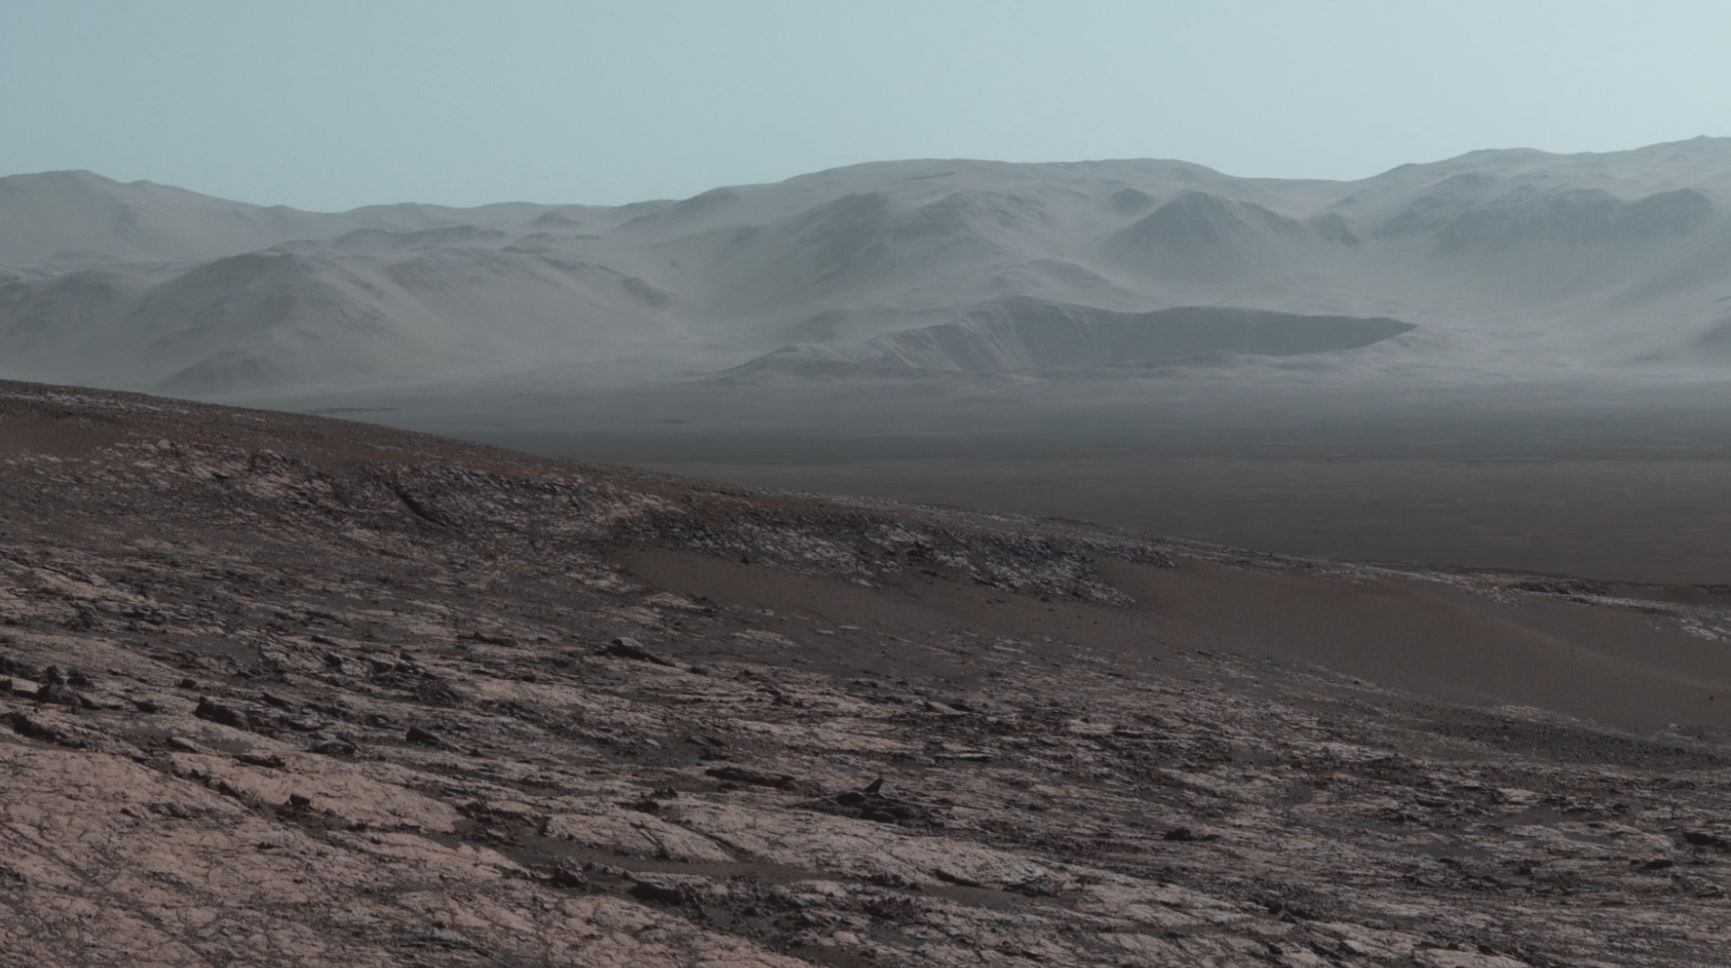 see the image 'Curiosity at Martian Scienic Overlook'